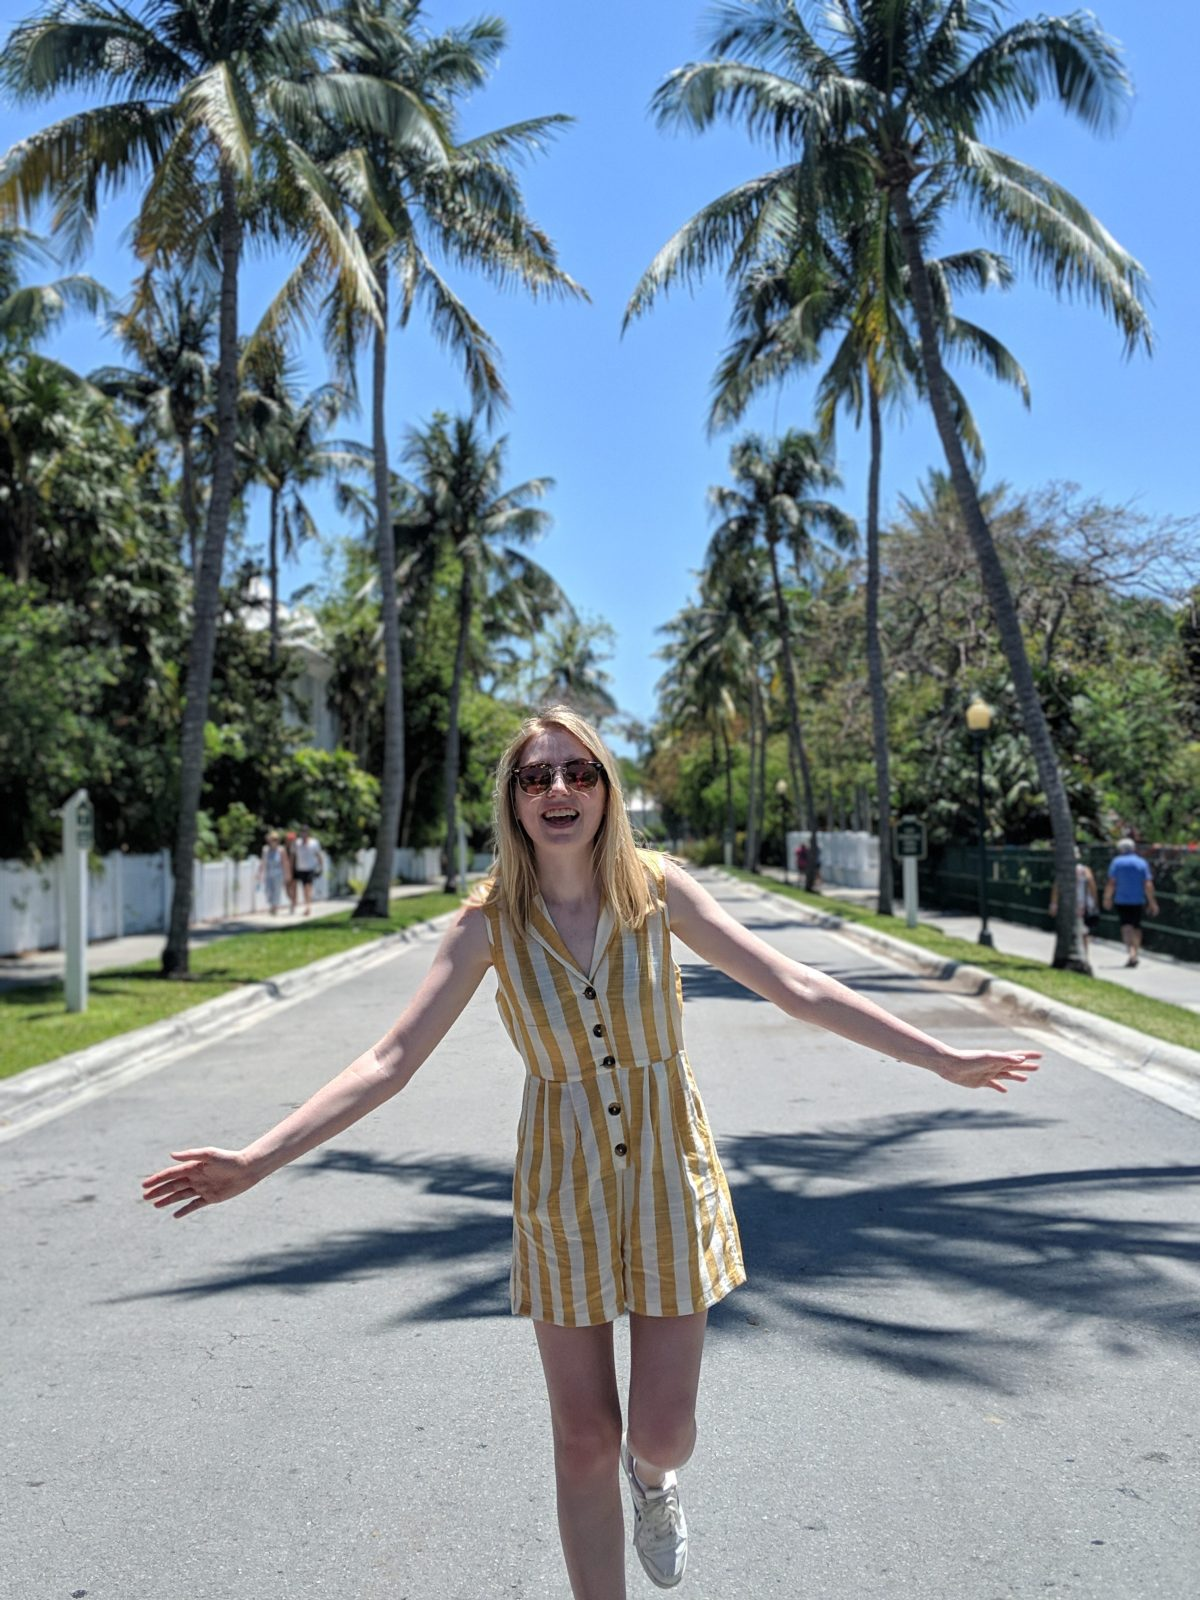 10 things I loved (and hated) about my visit to Florida